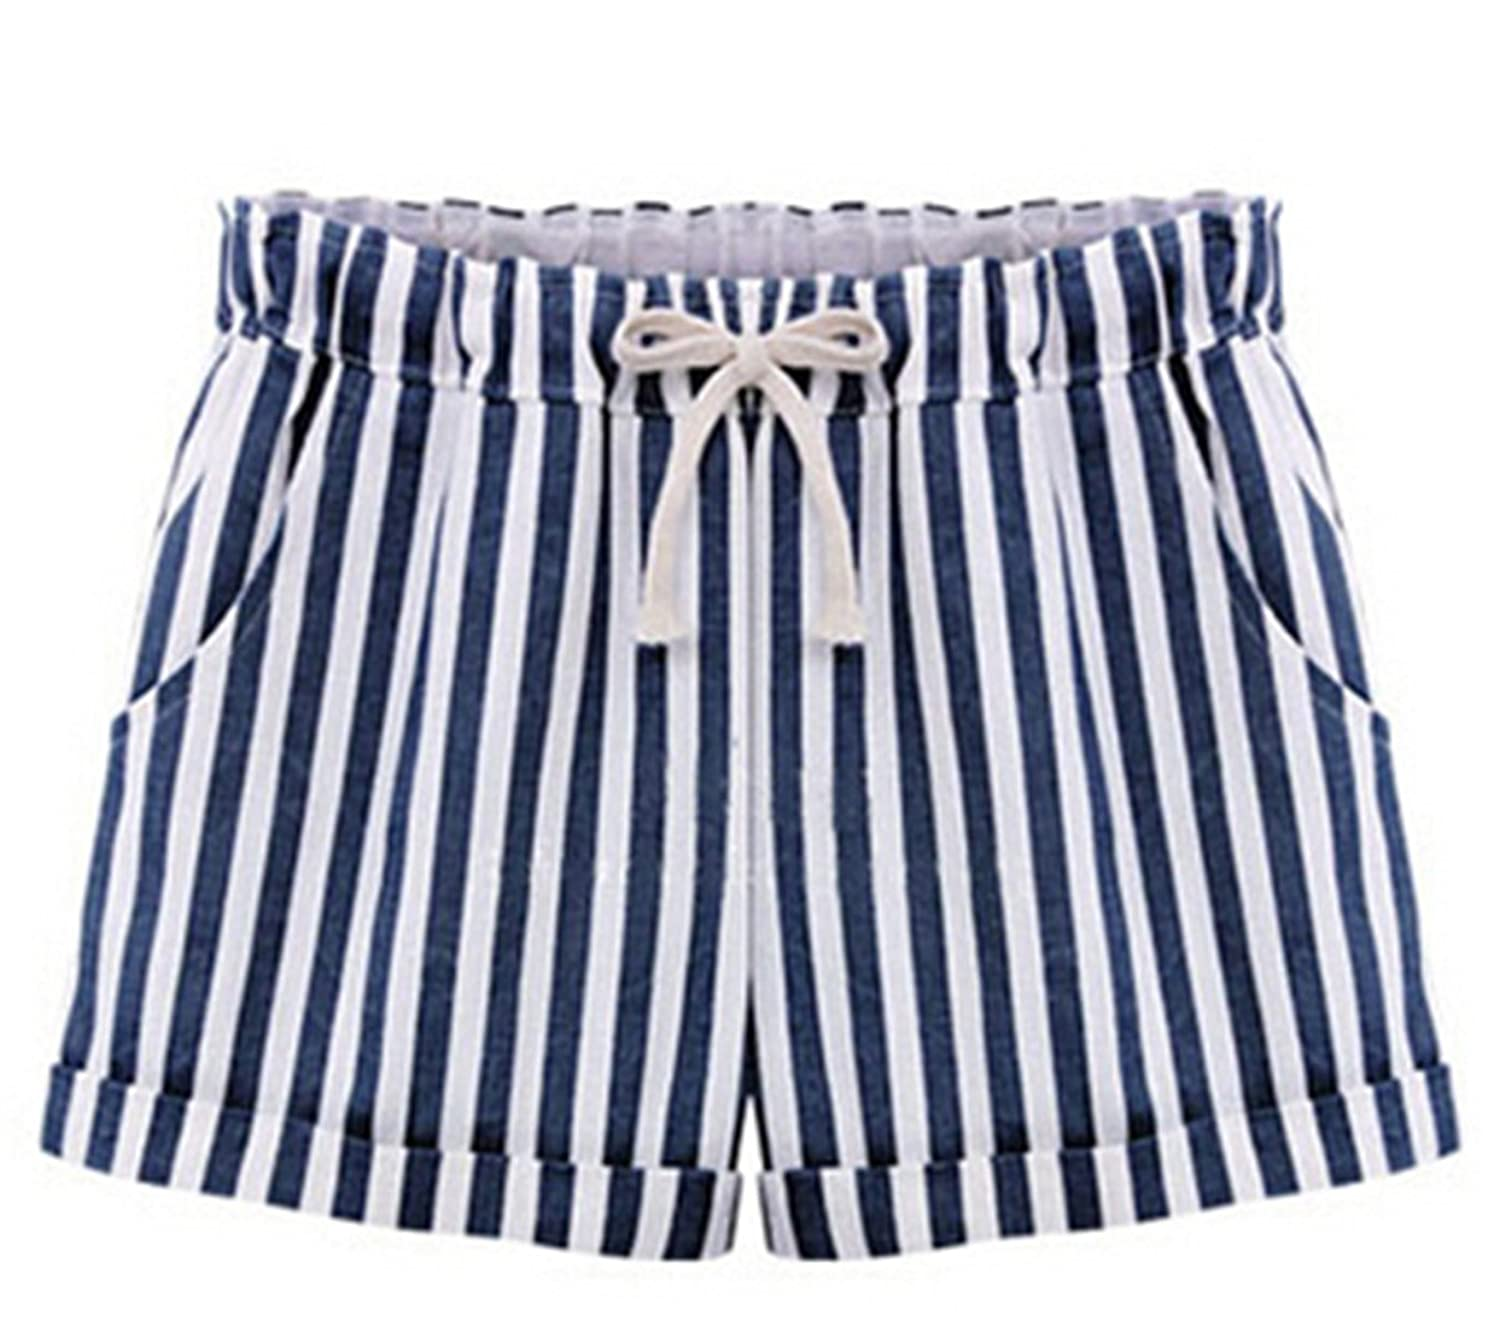 MLG Womens Striped Tie-front Casual Elastic Waist Shorts